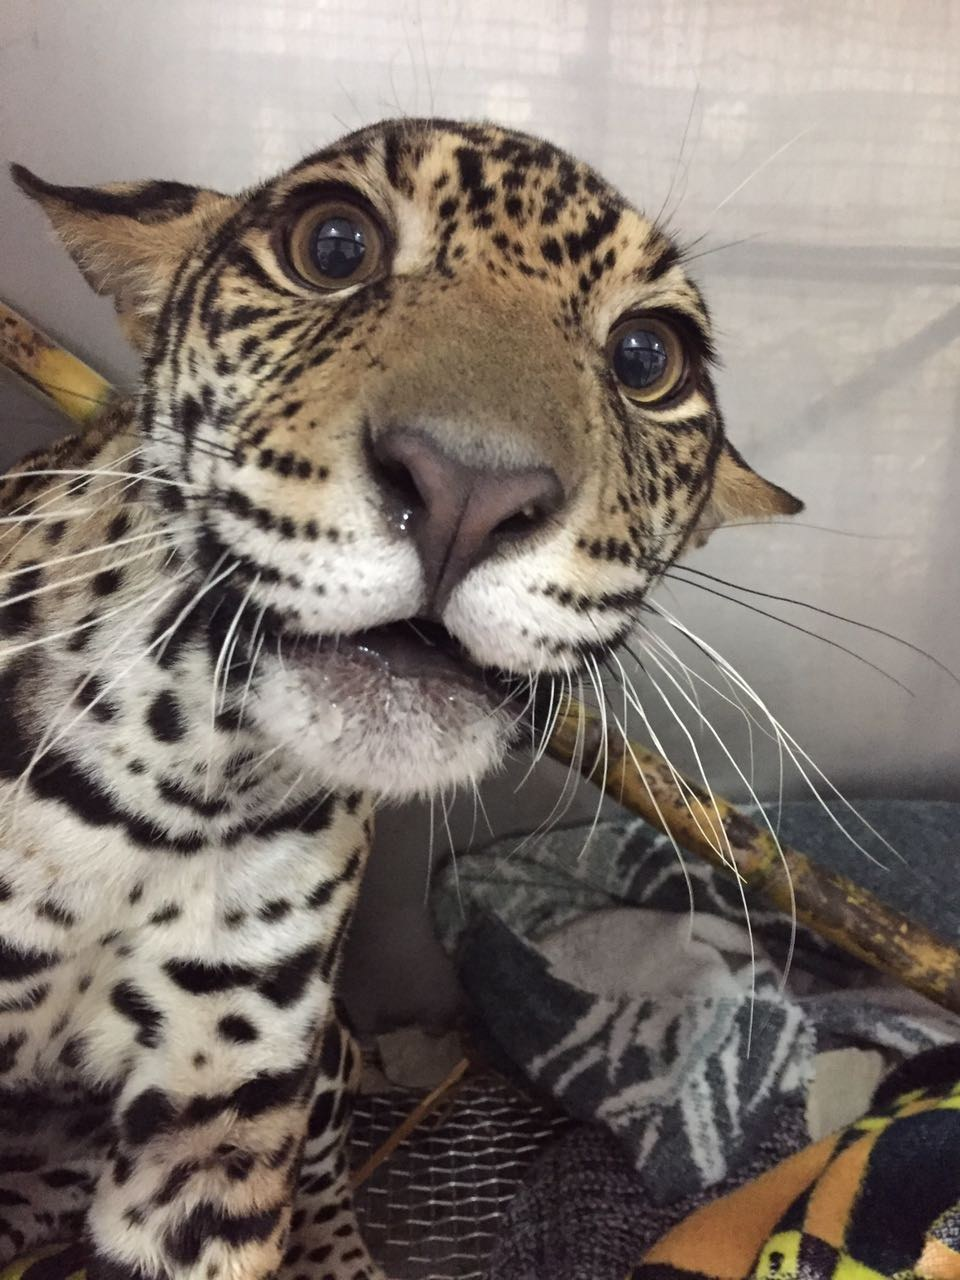 Baby jaguar recovering at an animal hospital in Ecuador